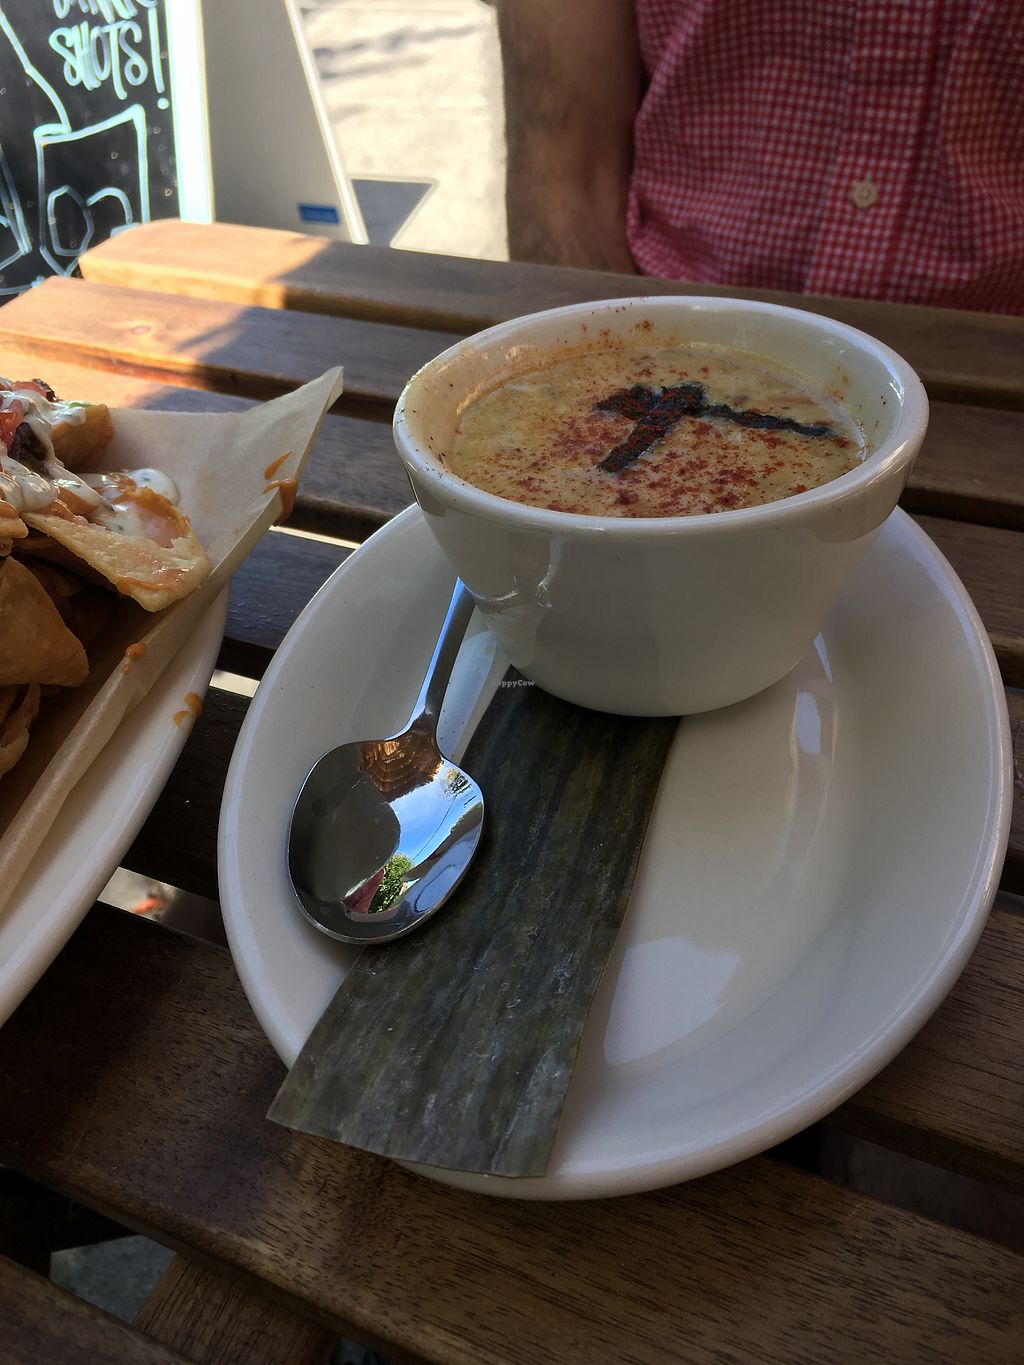 "Photo of No Bones Beach Club  by <a href=""/members/profile/perkonius"">perkonius</a> <br/>Chowder - good but could use more mushroom/seaweed flavor for that vegan ""chowder"" taste <br/> September 10, 2017  - <a href='/contact/abuse/image/86035/303090'>Report</a>"